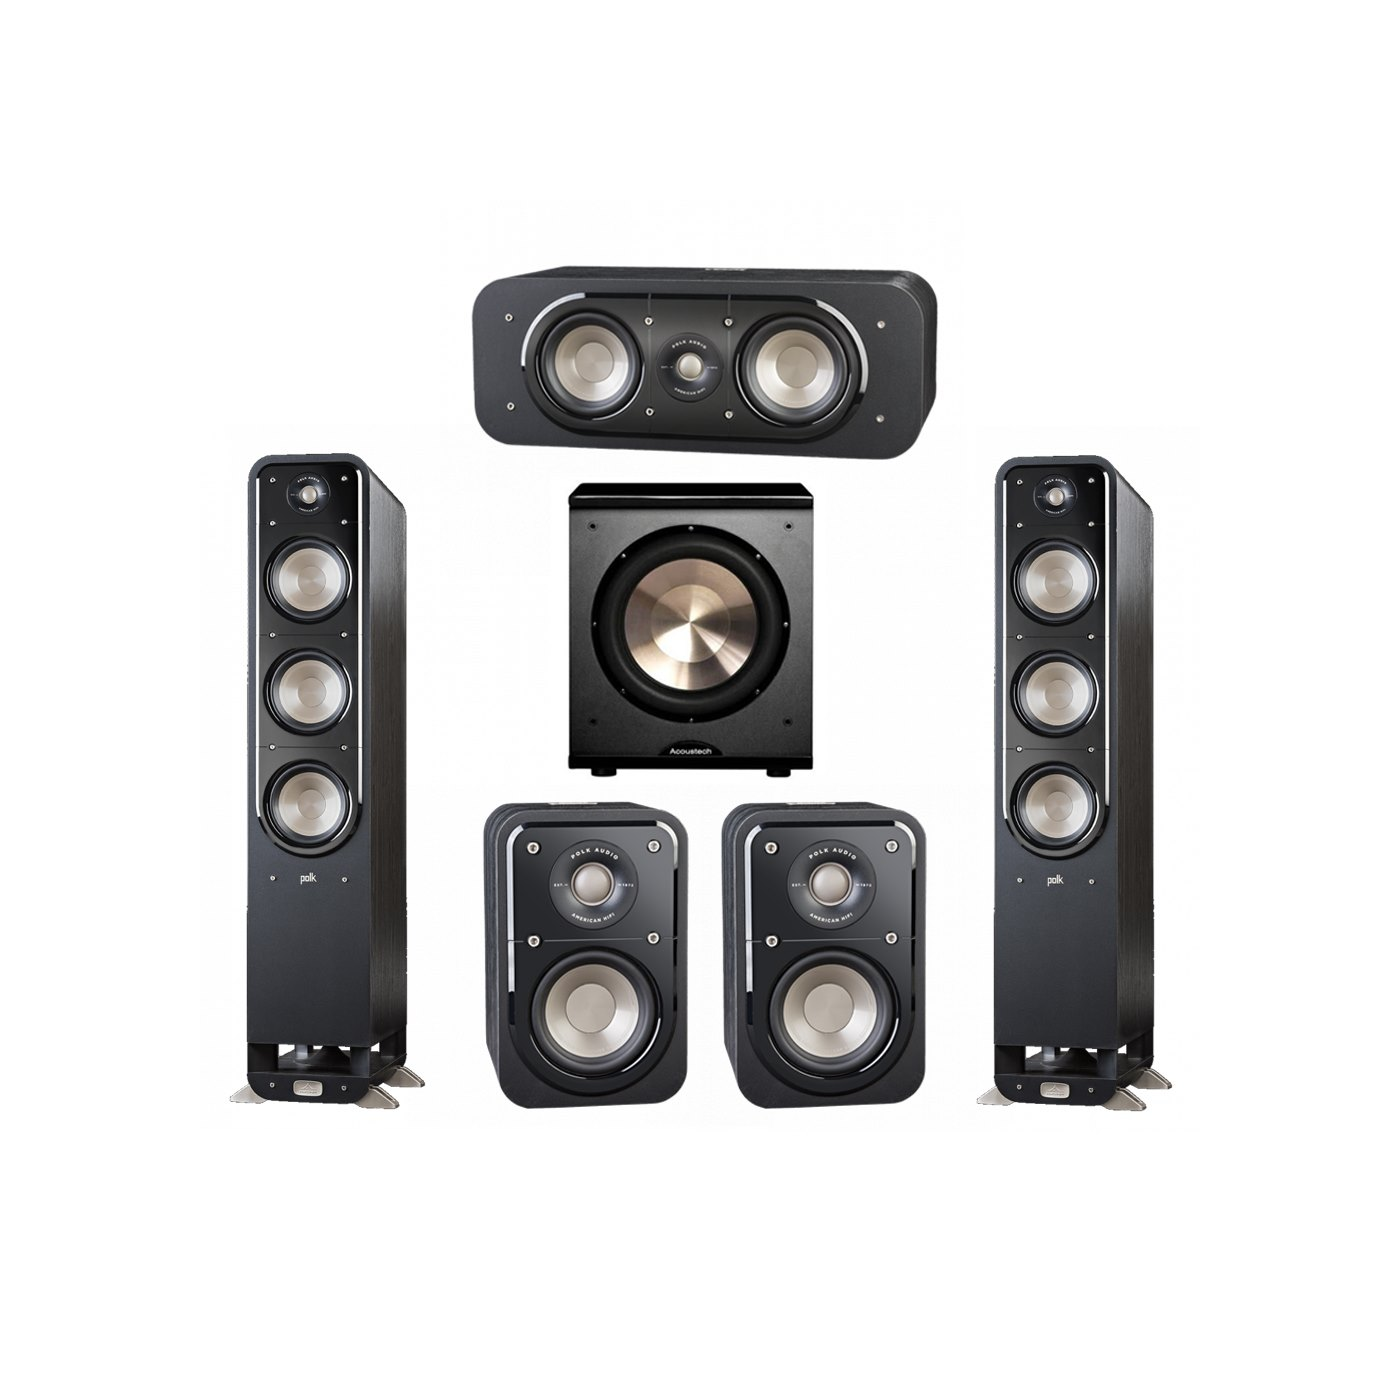 Polk Audio Signature 5.1 System with 2 S60 Tower Speaker, 1 Polk S30 Center Speaker, 2 Polk S10 Surround Speaker, 1 BIC/Acoustech Platinum Series PL-200 Subwoofer